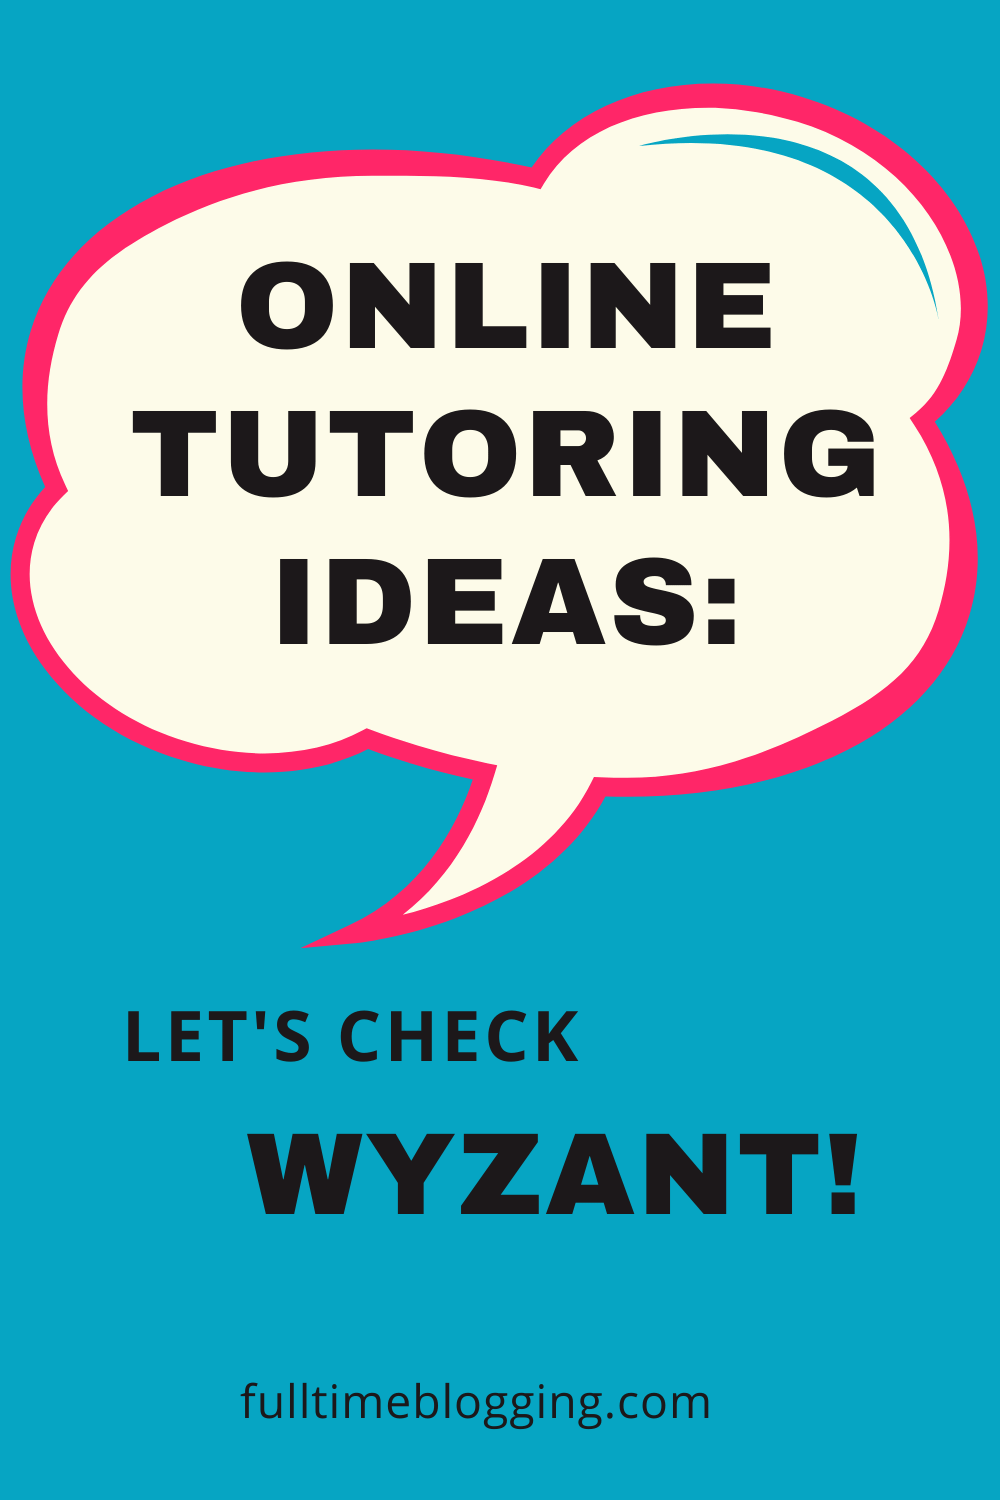 what is wyzant about